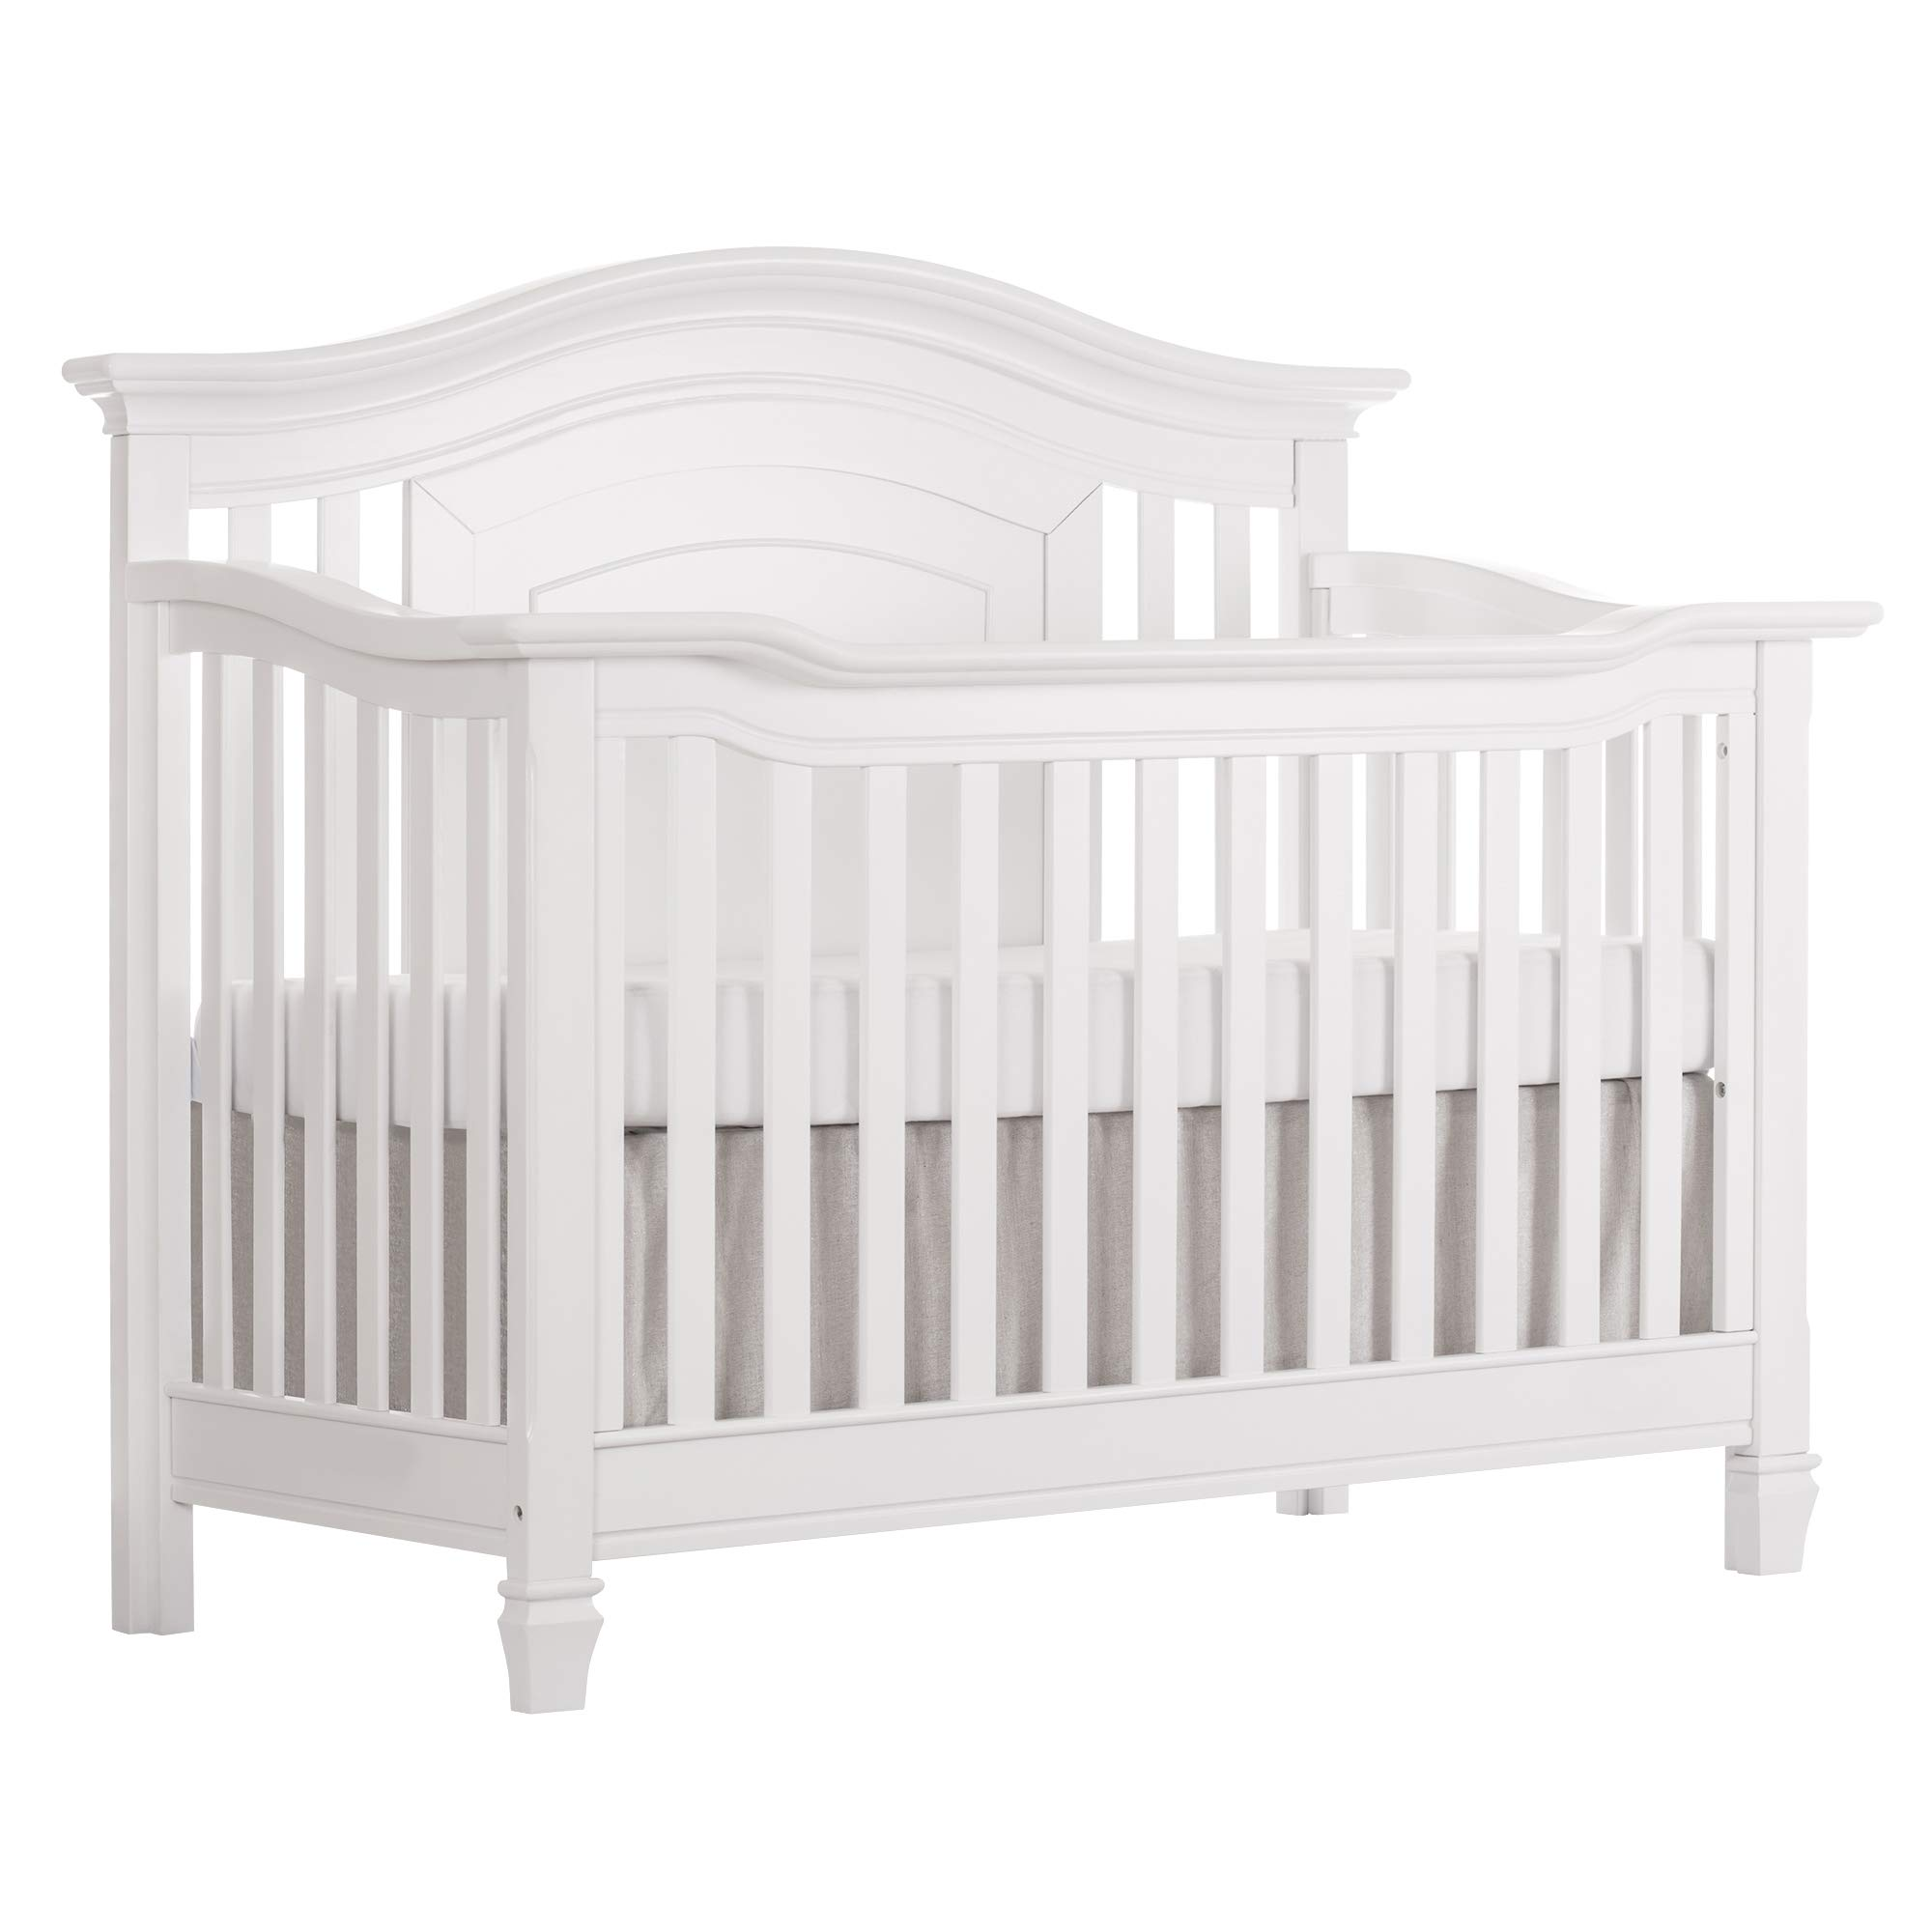 5 Cool Cribs That Convert To Full Beds: Amazon.com : Evolur Universal Convertible Crib Wooden Full